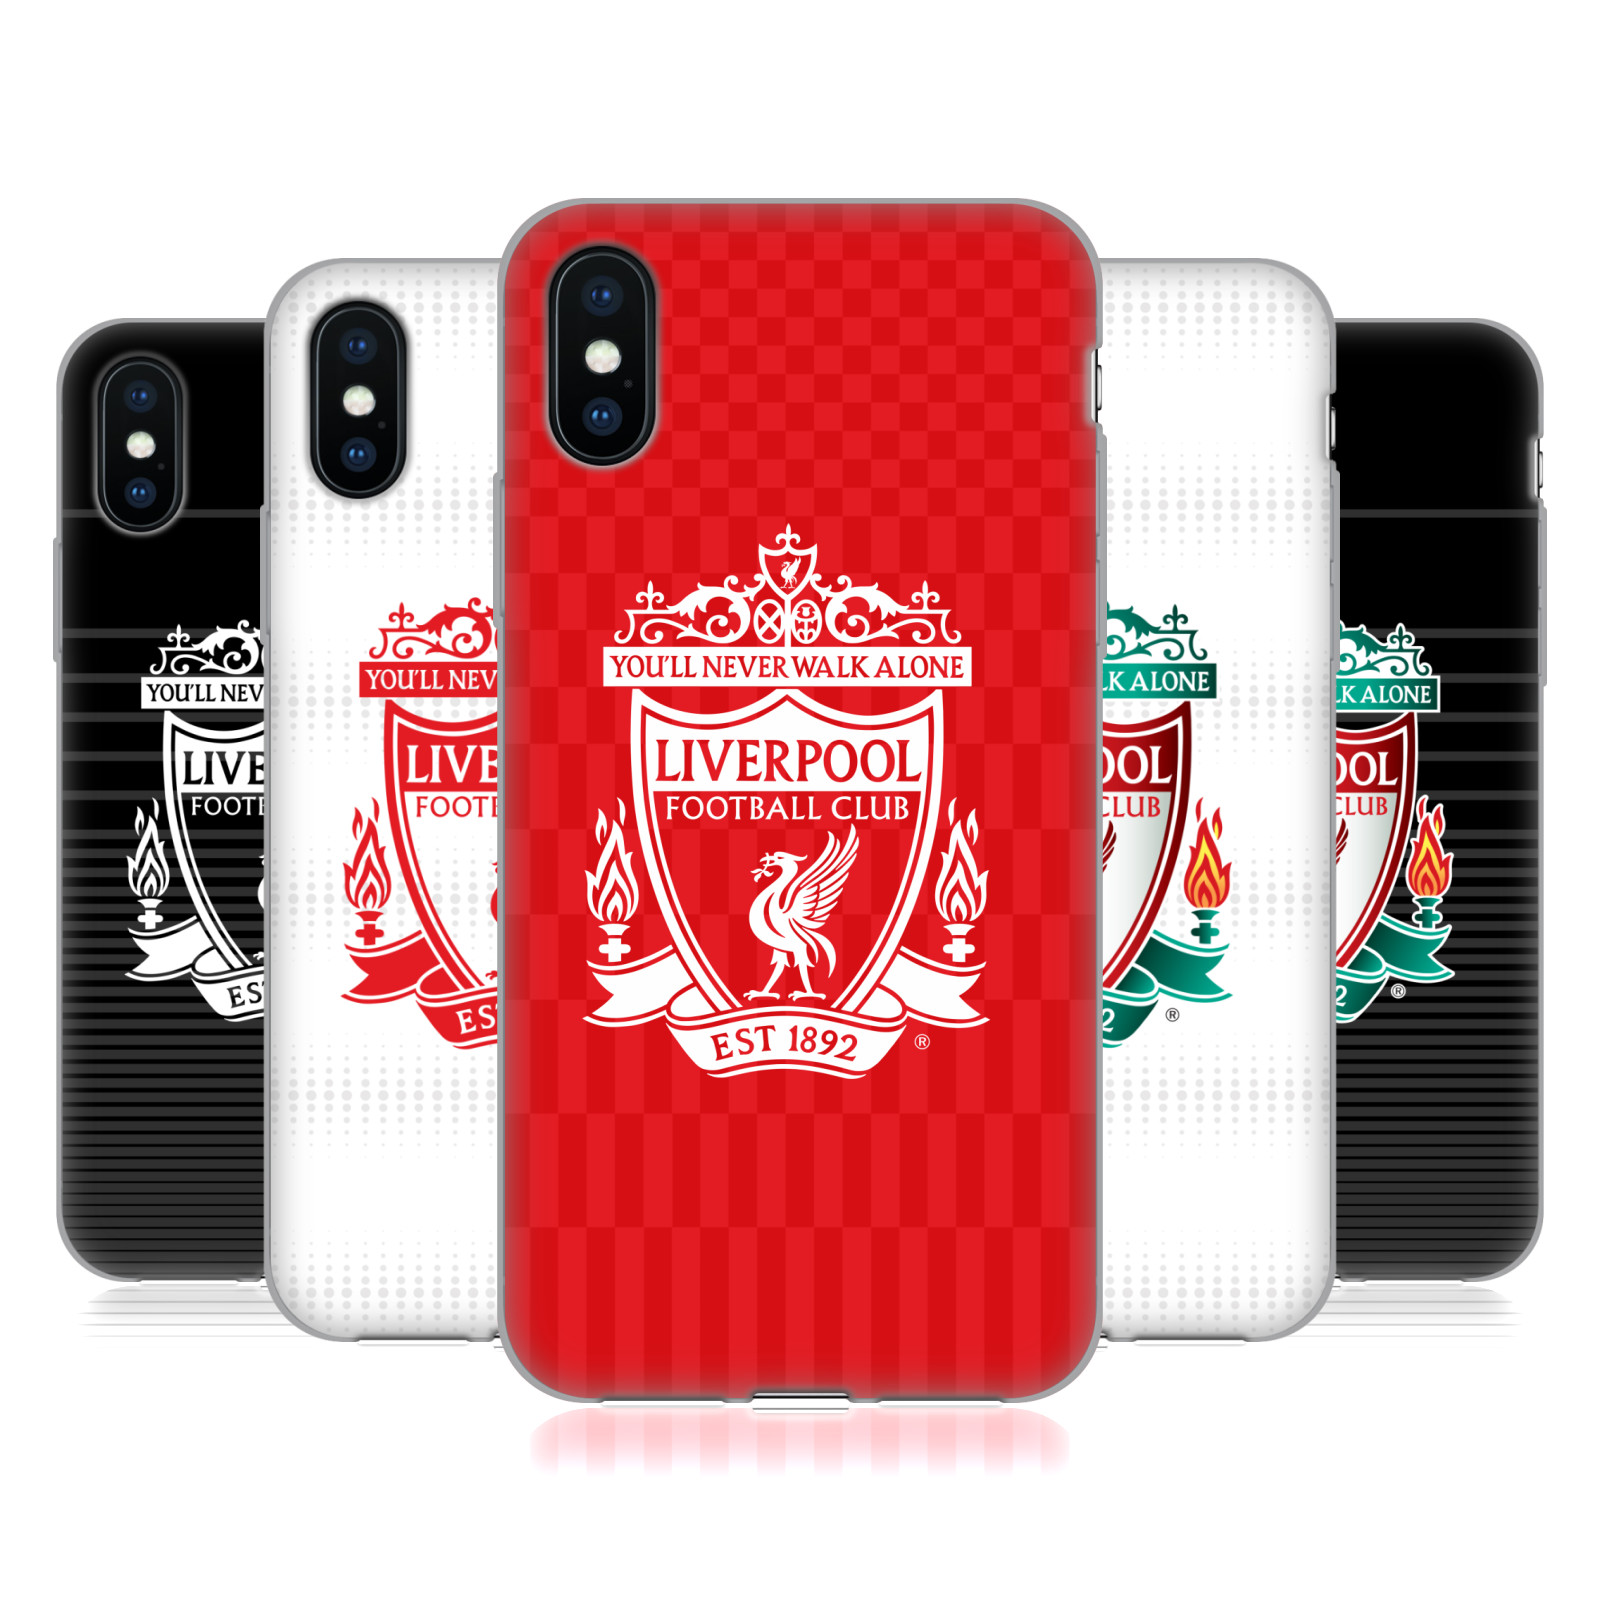 Liverpool Football Club Crest Designs